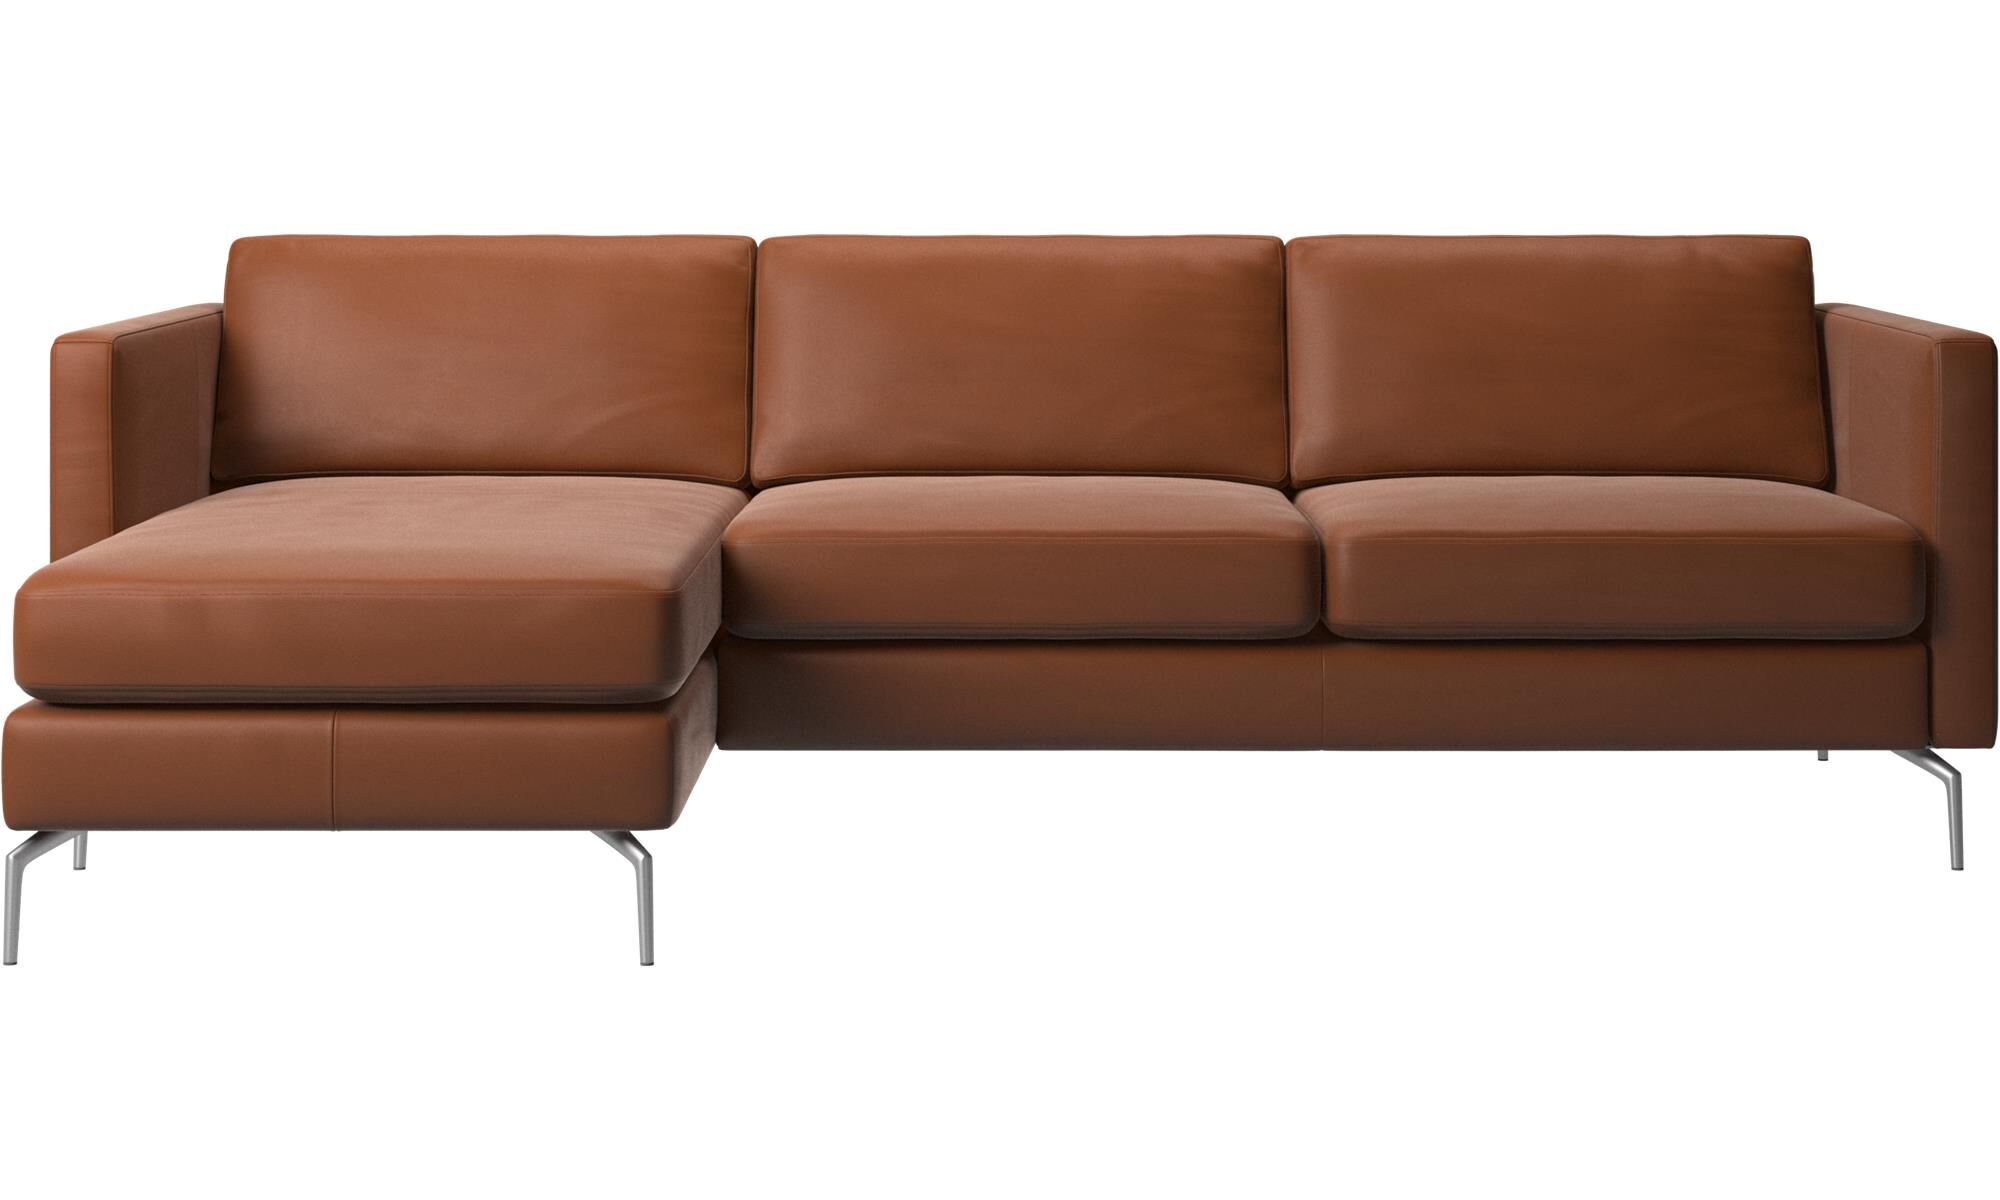 Etonnant Chaise Lounge Sofas   Osaka Sofa With Resting Unit, Regular Seat   Brown    Leather